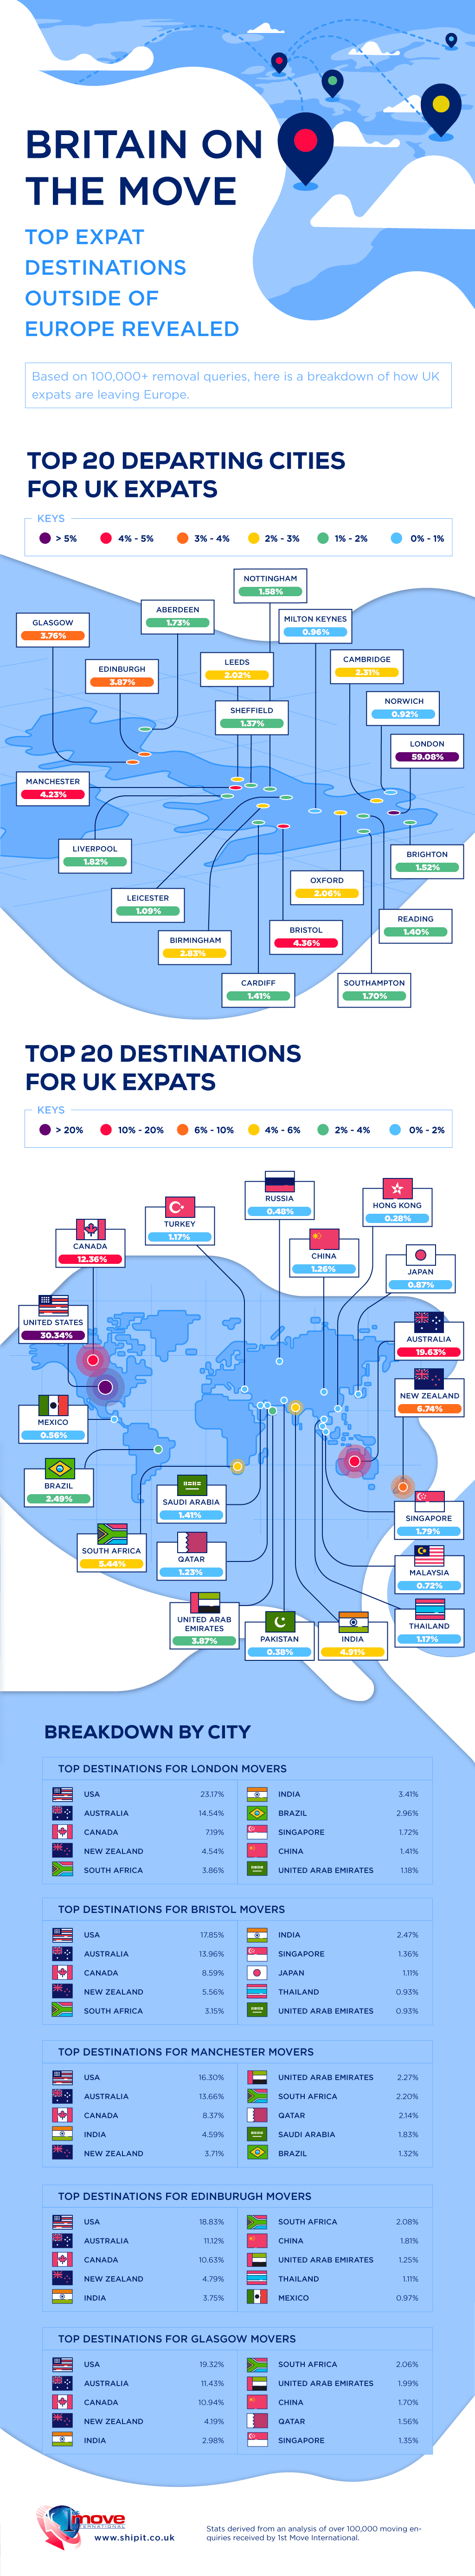 Britain on the move infograpgic